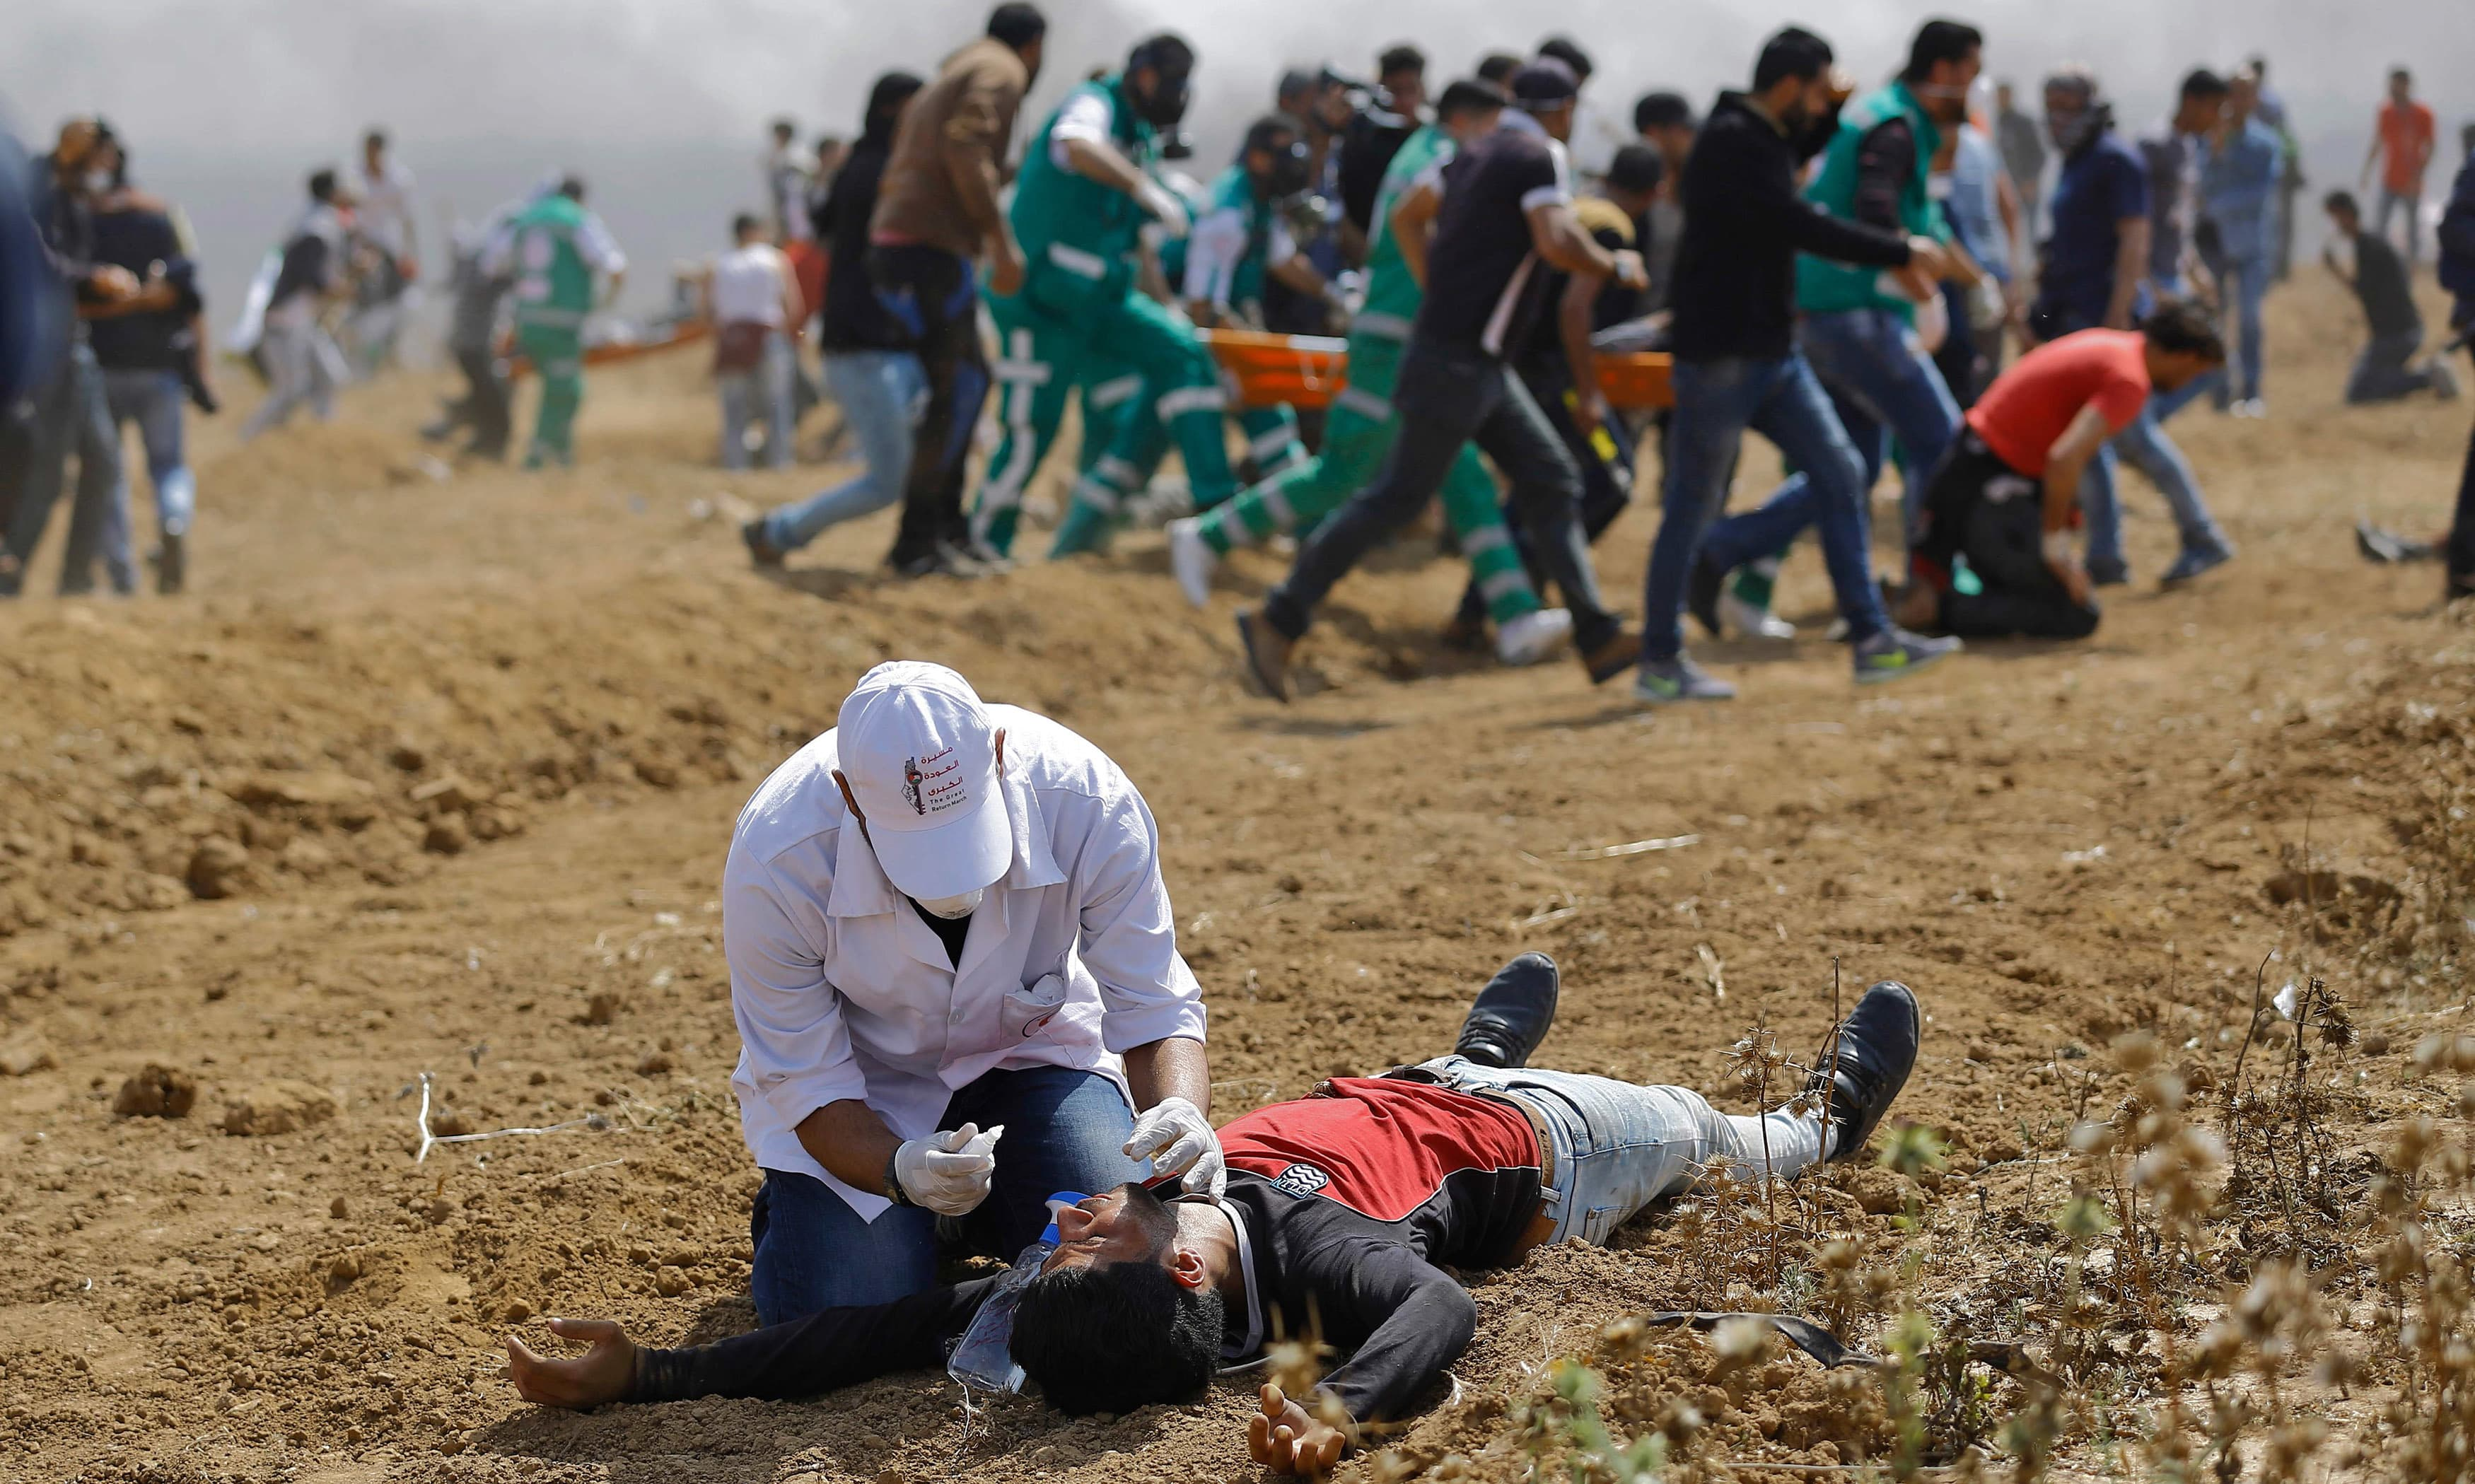 A Palestinian helps a man during clashes with Israeli security forces near the eastern border of the Gaza Strip. —AFP